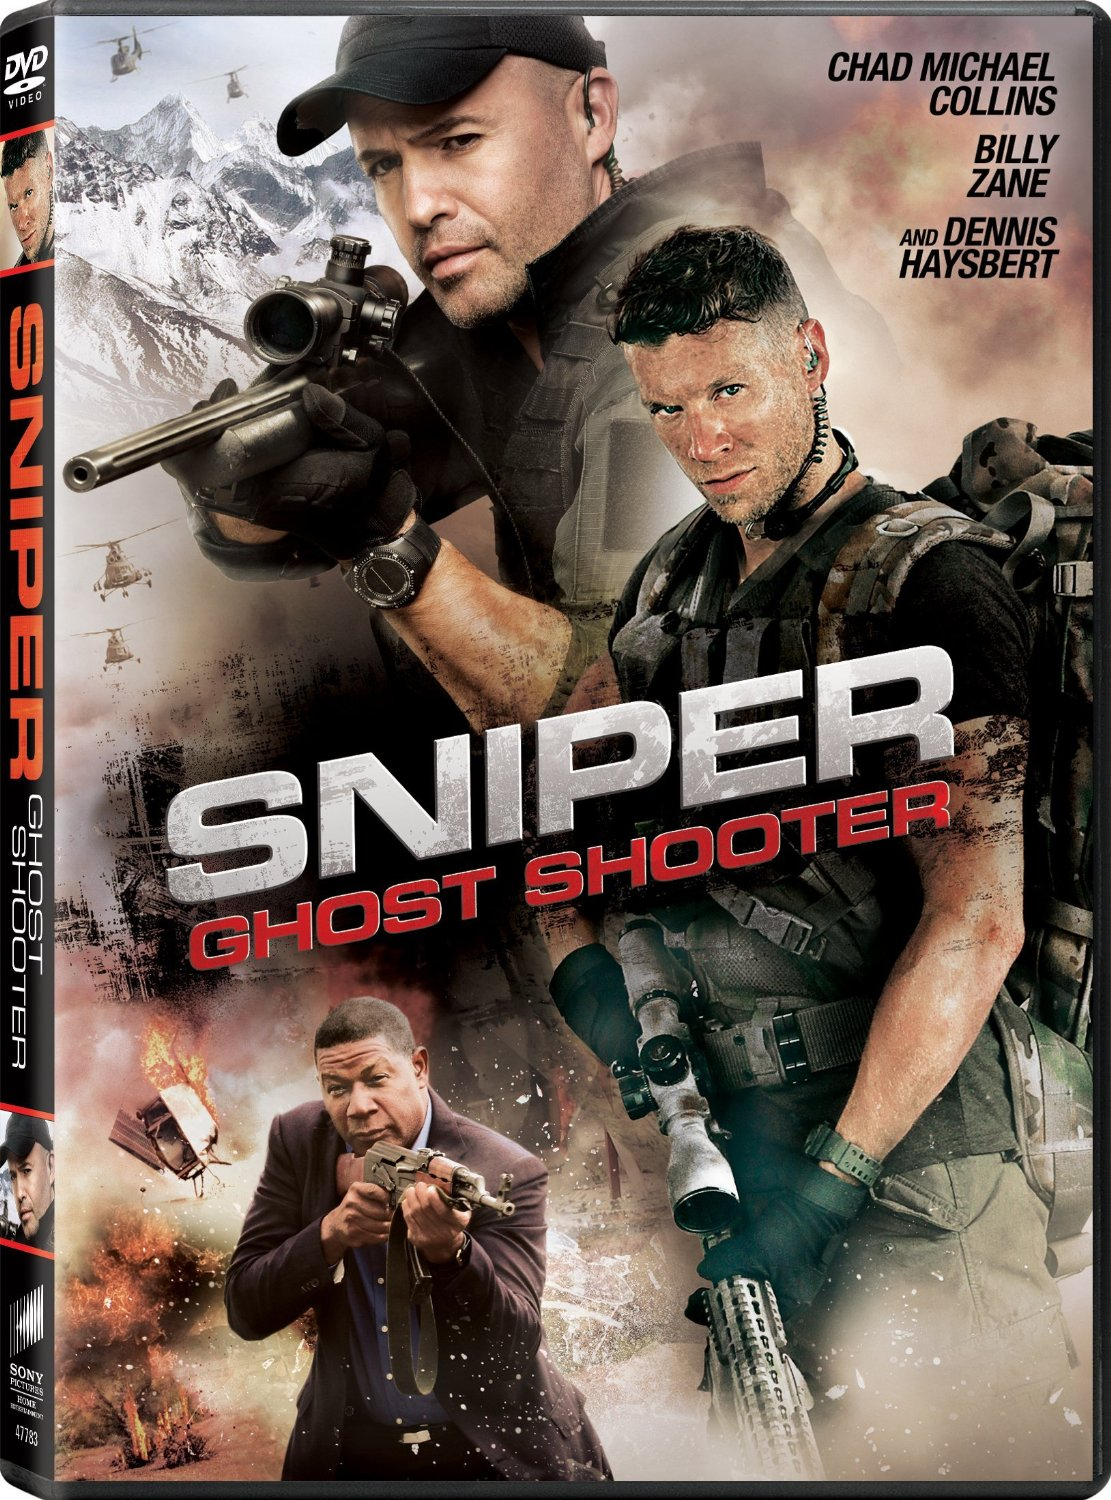 COVERS.BOX.SK ::: shooter - high quality DVD / Blueray / Movie